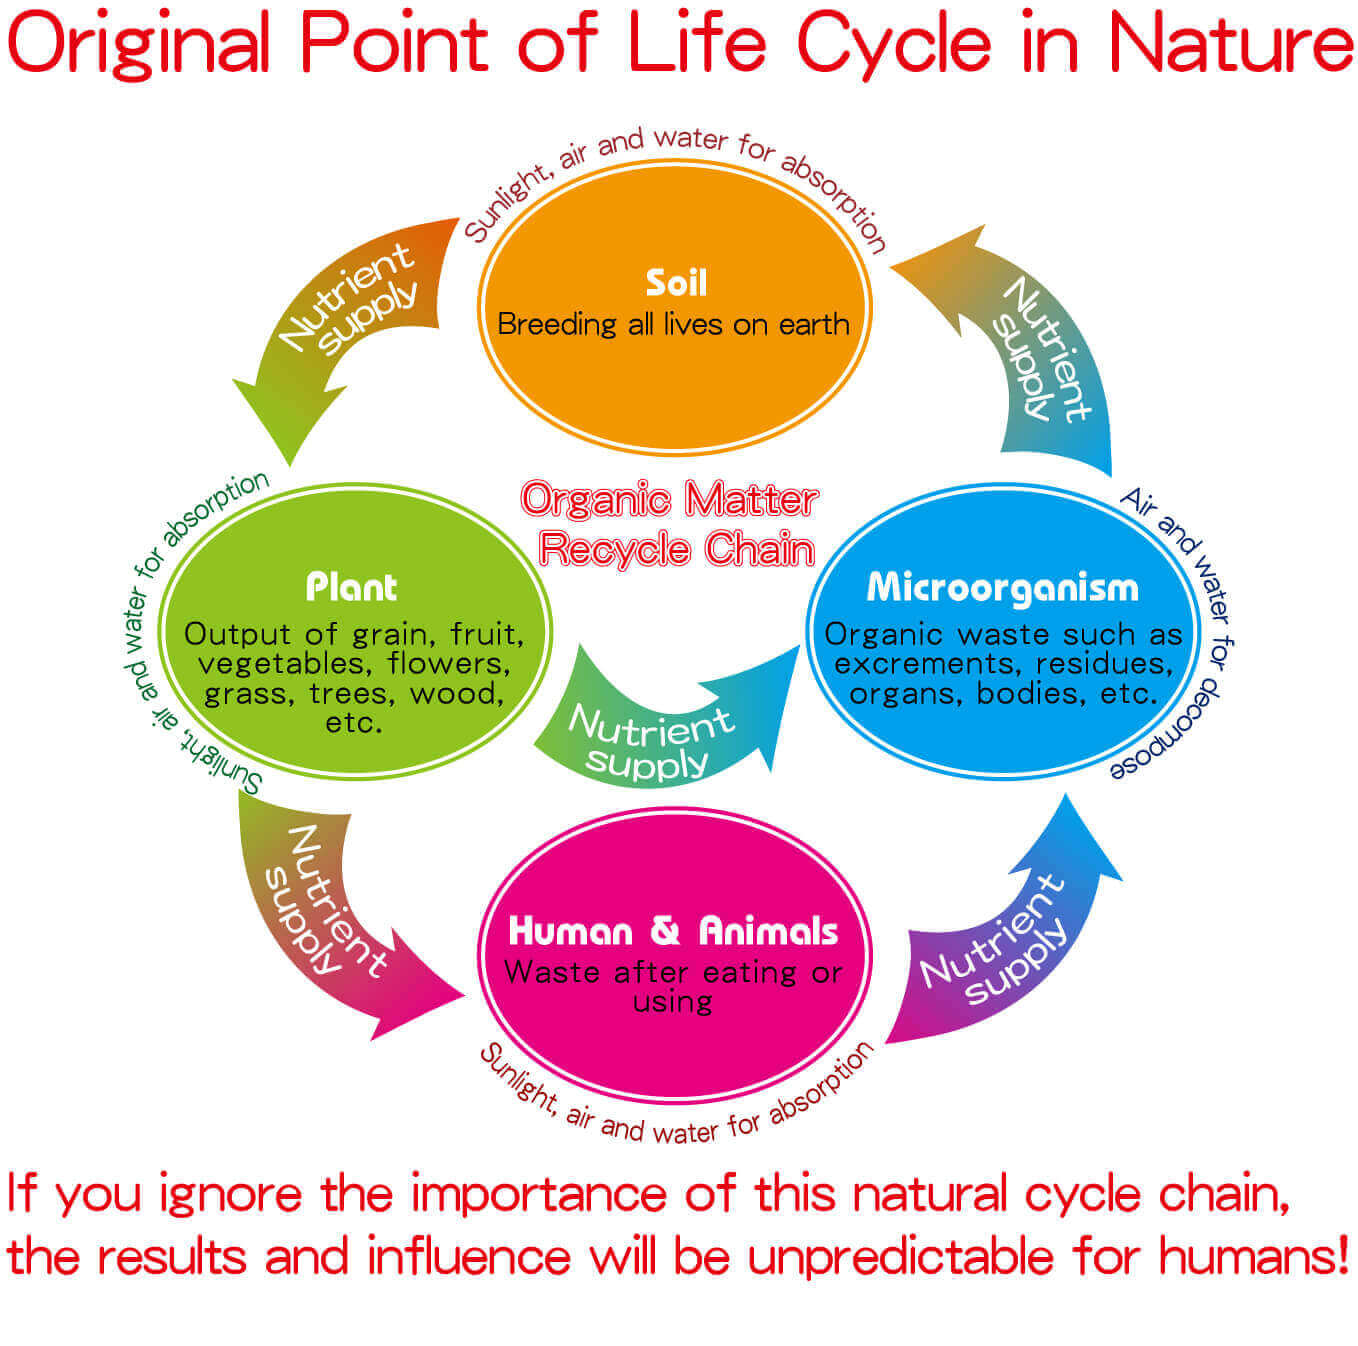 Organic Life Cycle in Nature